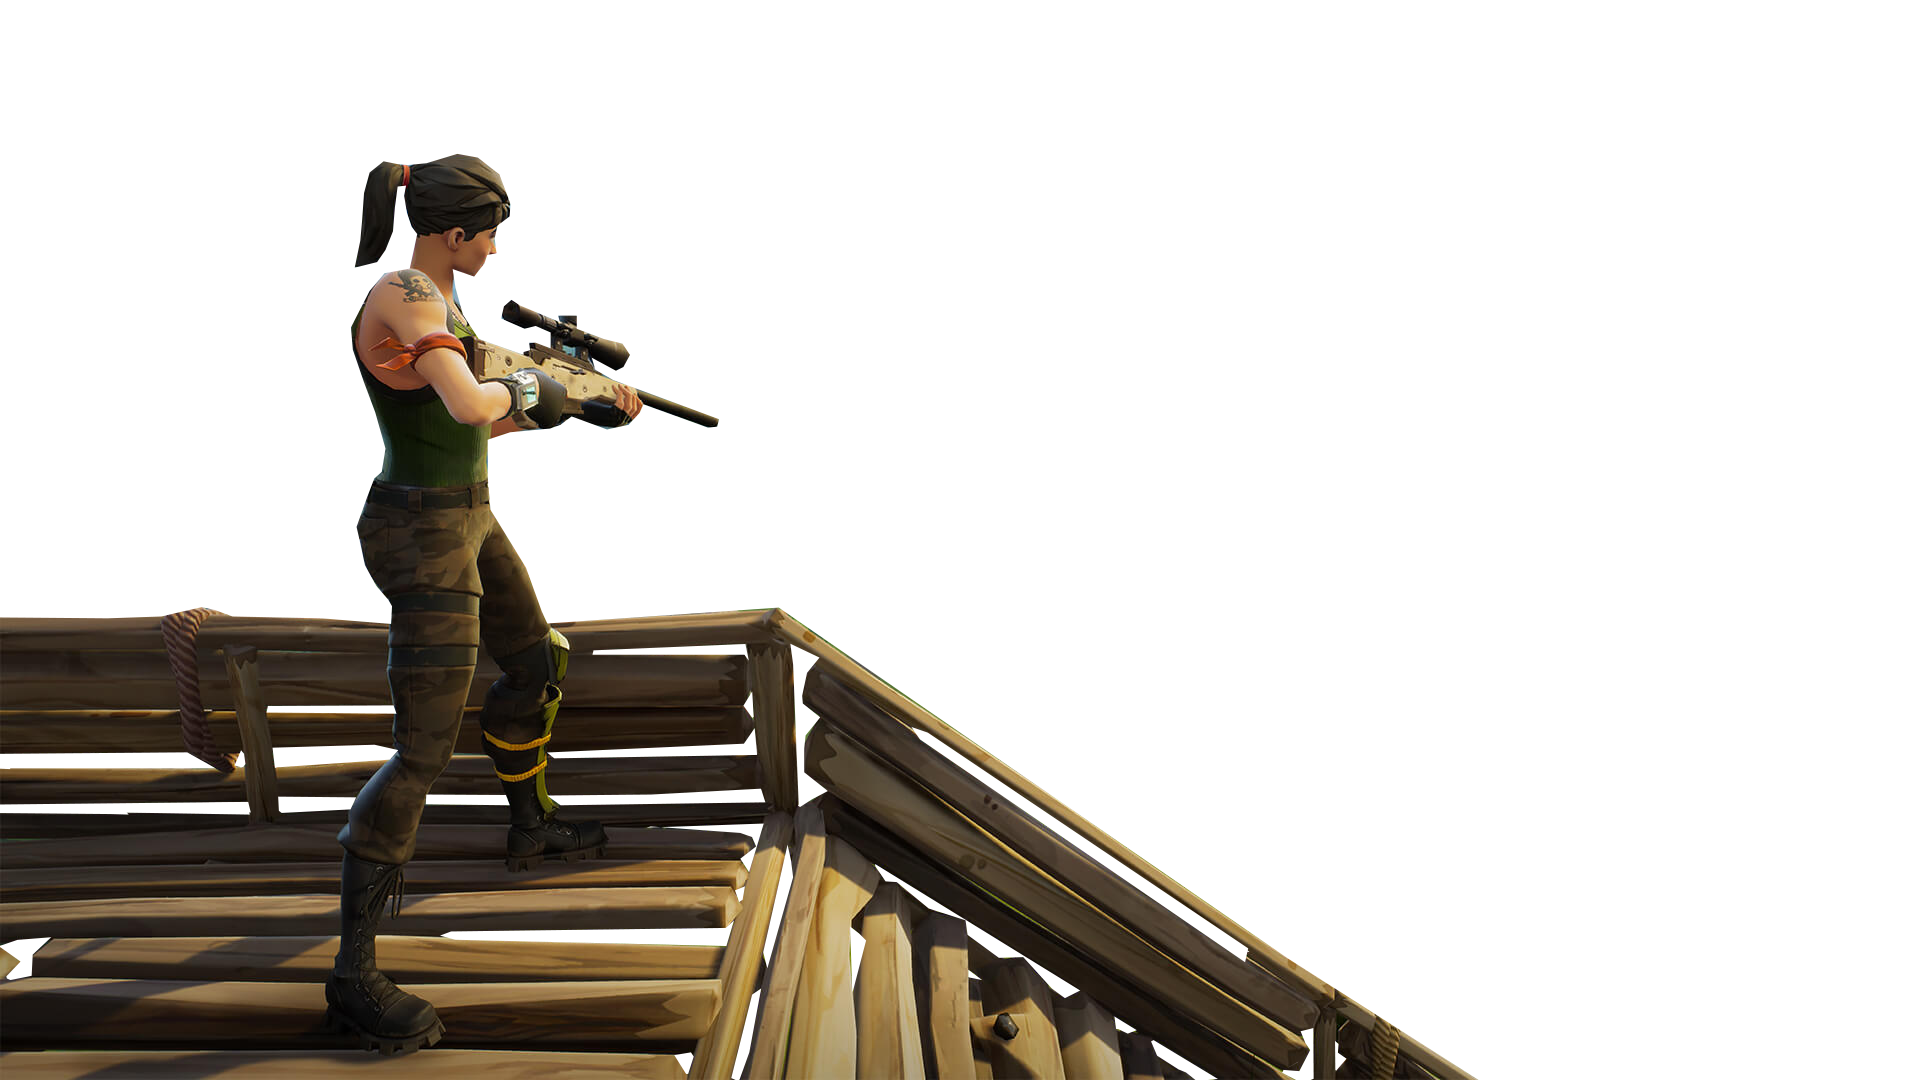 Sniper On Stairs Fortnite Thumbnail Template Png Image Fortnite Thumbnail Fortnite Background Images Wallpapers